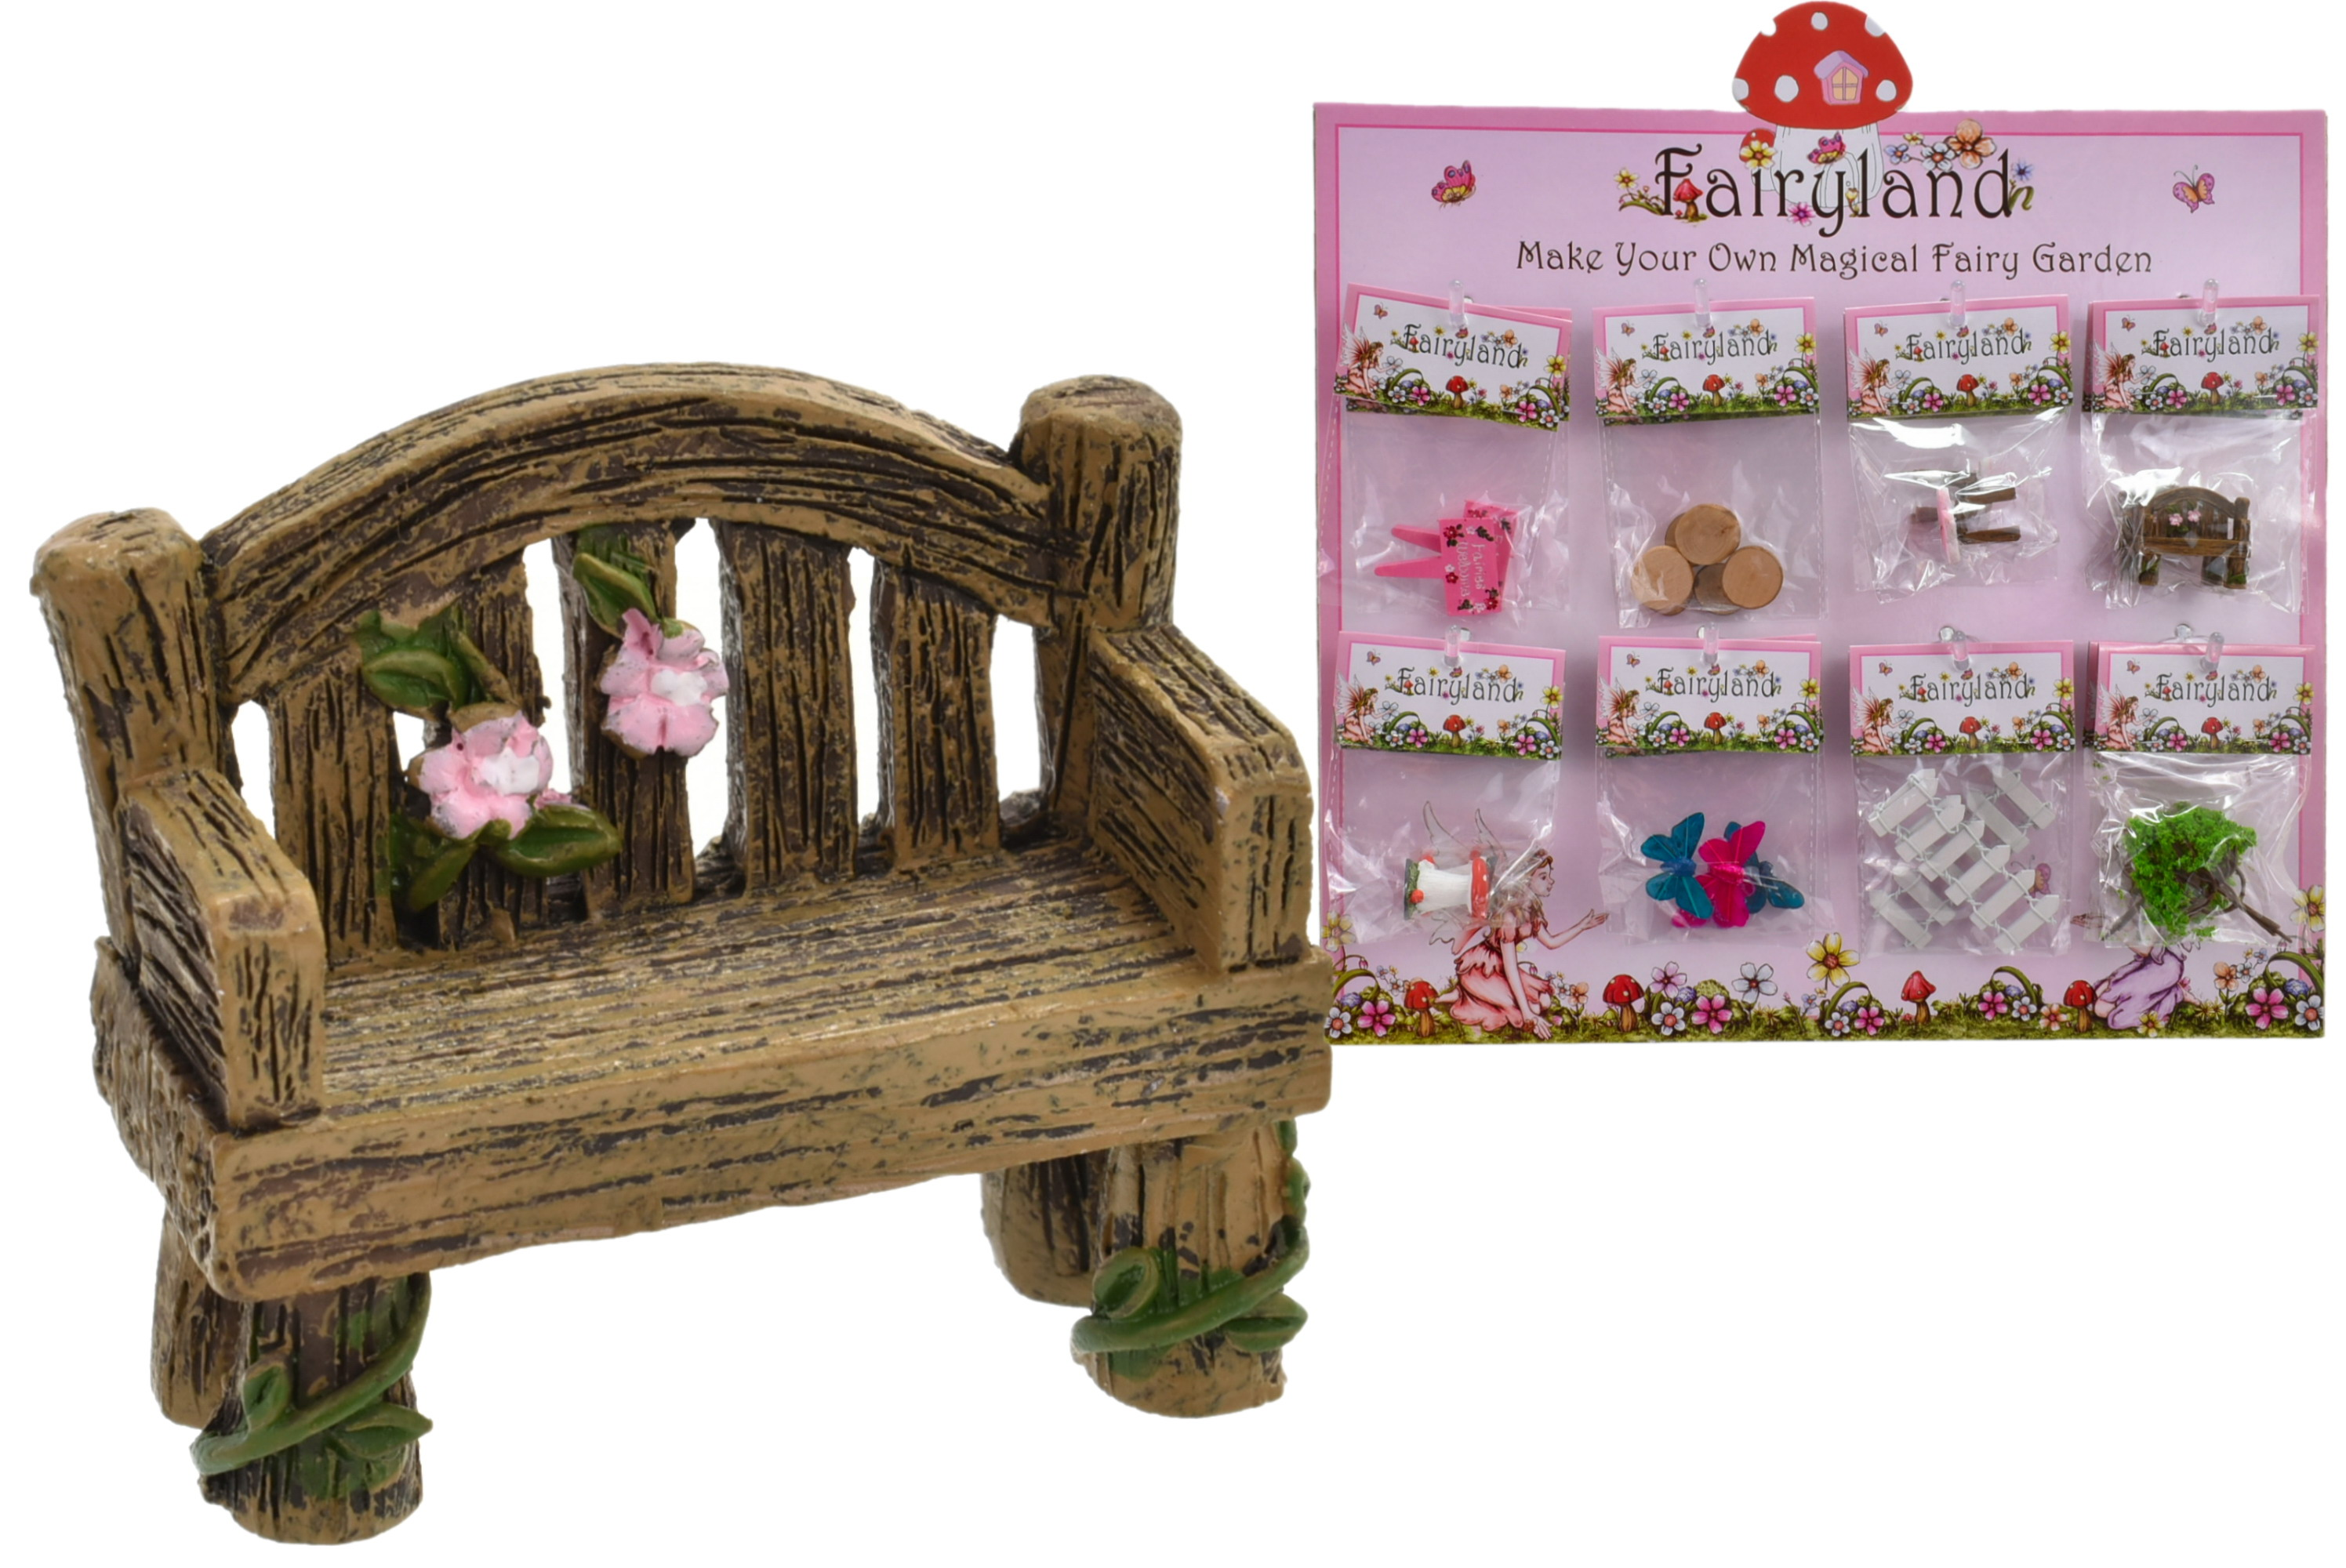 Fairyland Fairy Accessories 8 Assorted On Display Stand